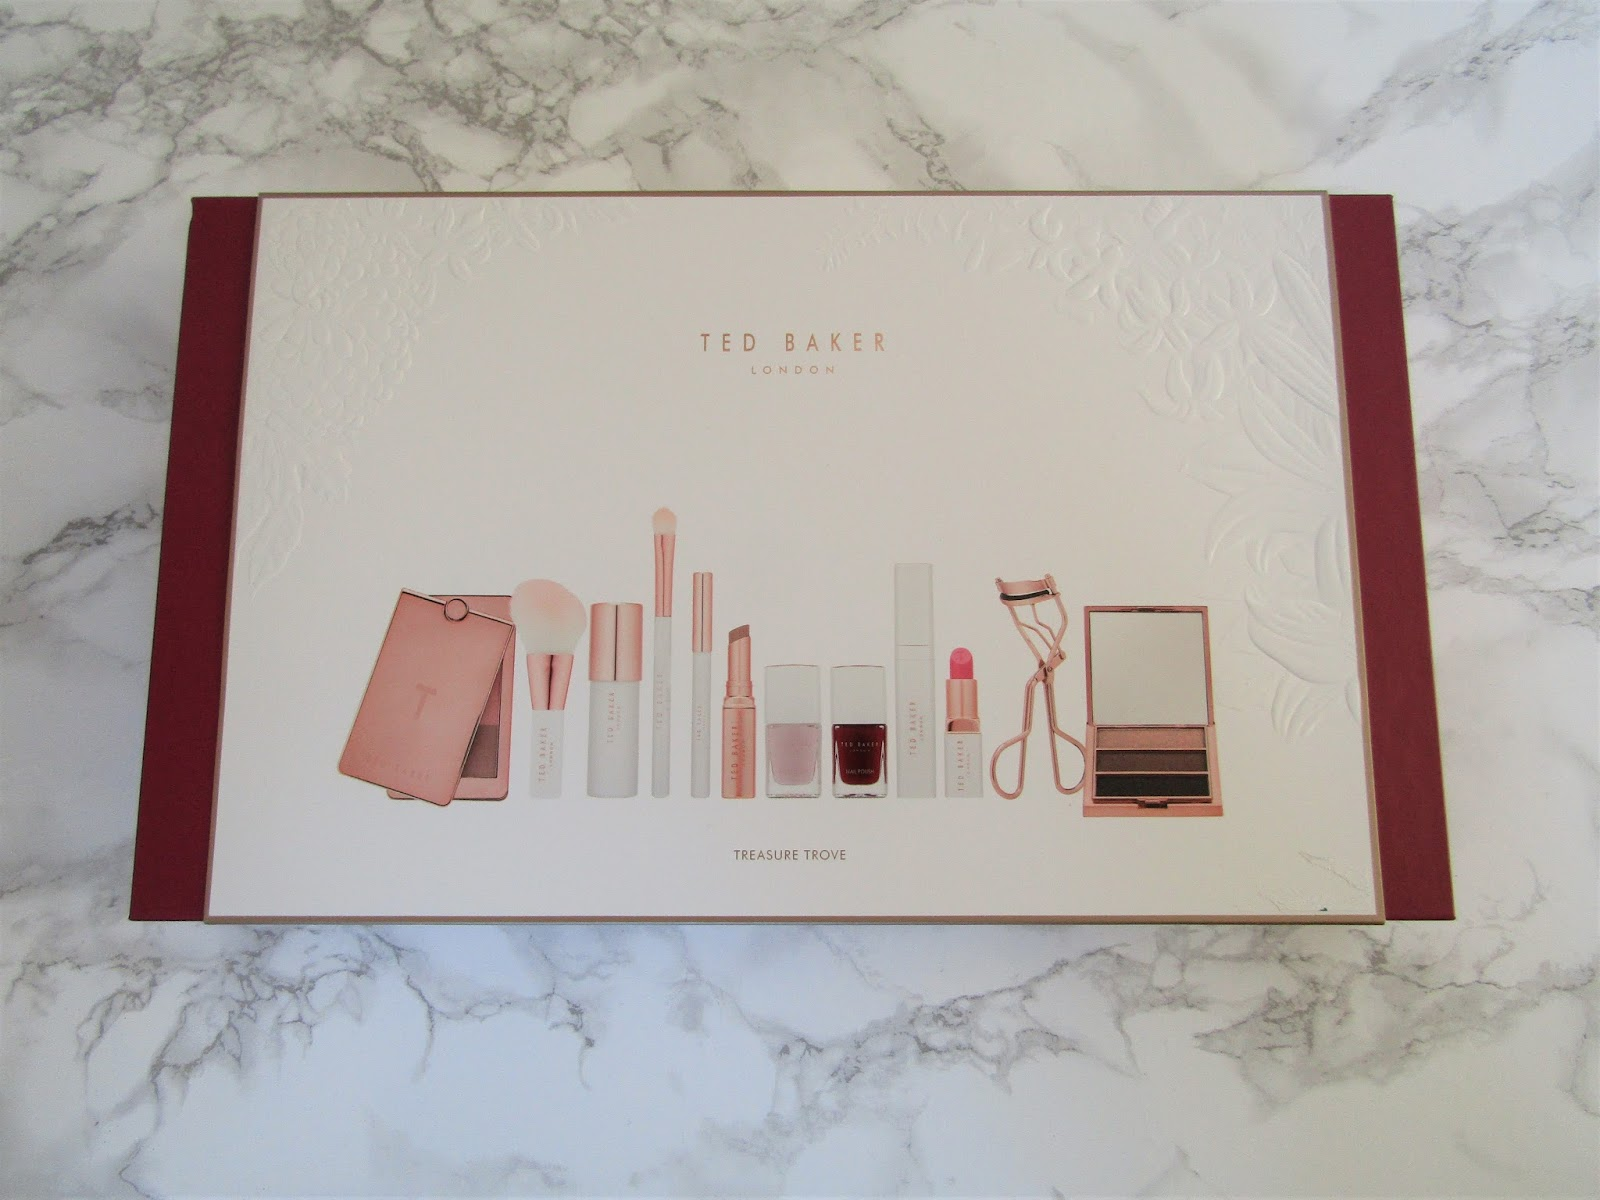 953cce5fb6312 I ve never tried Ted Baker make up before so when I received this